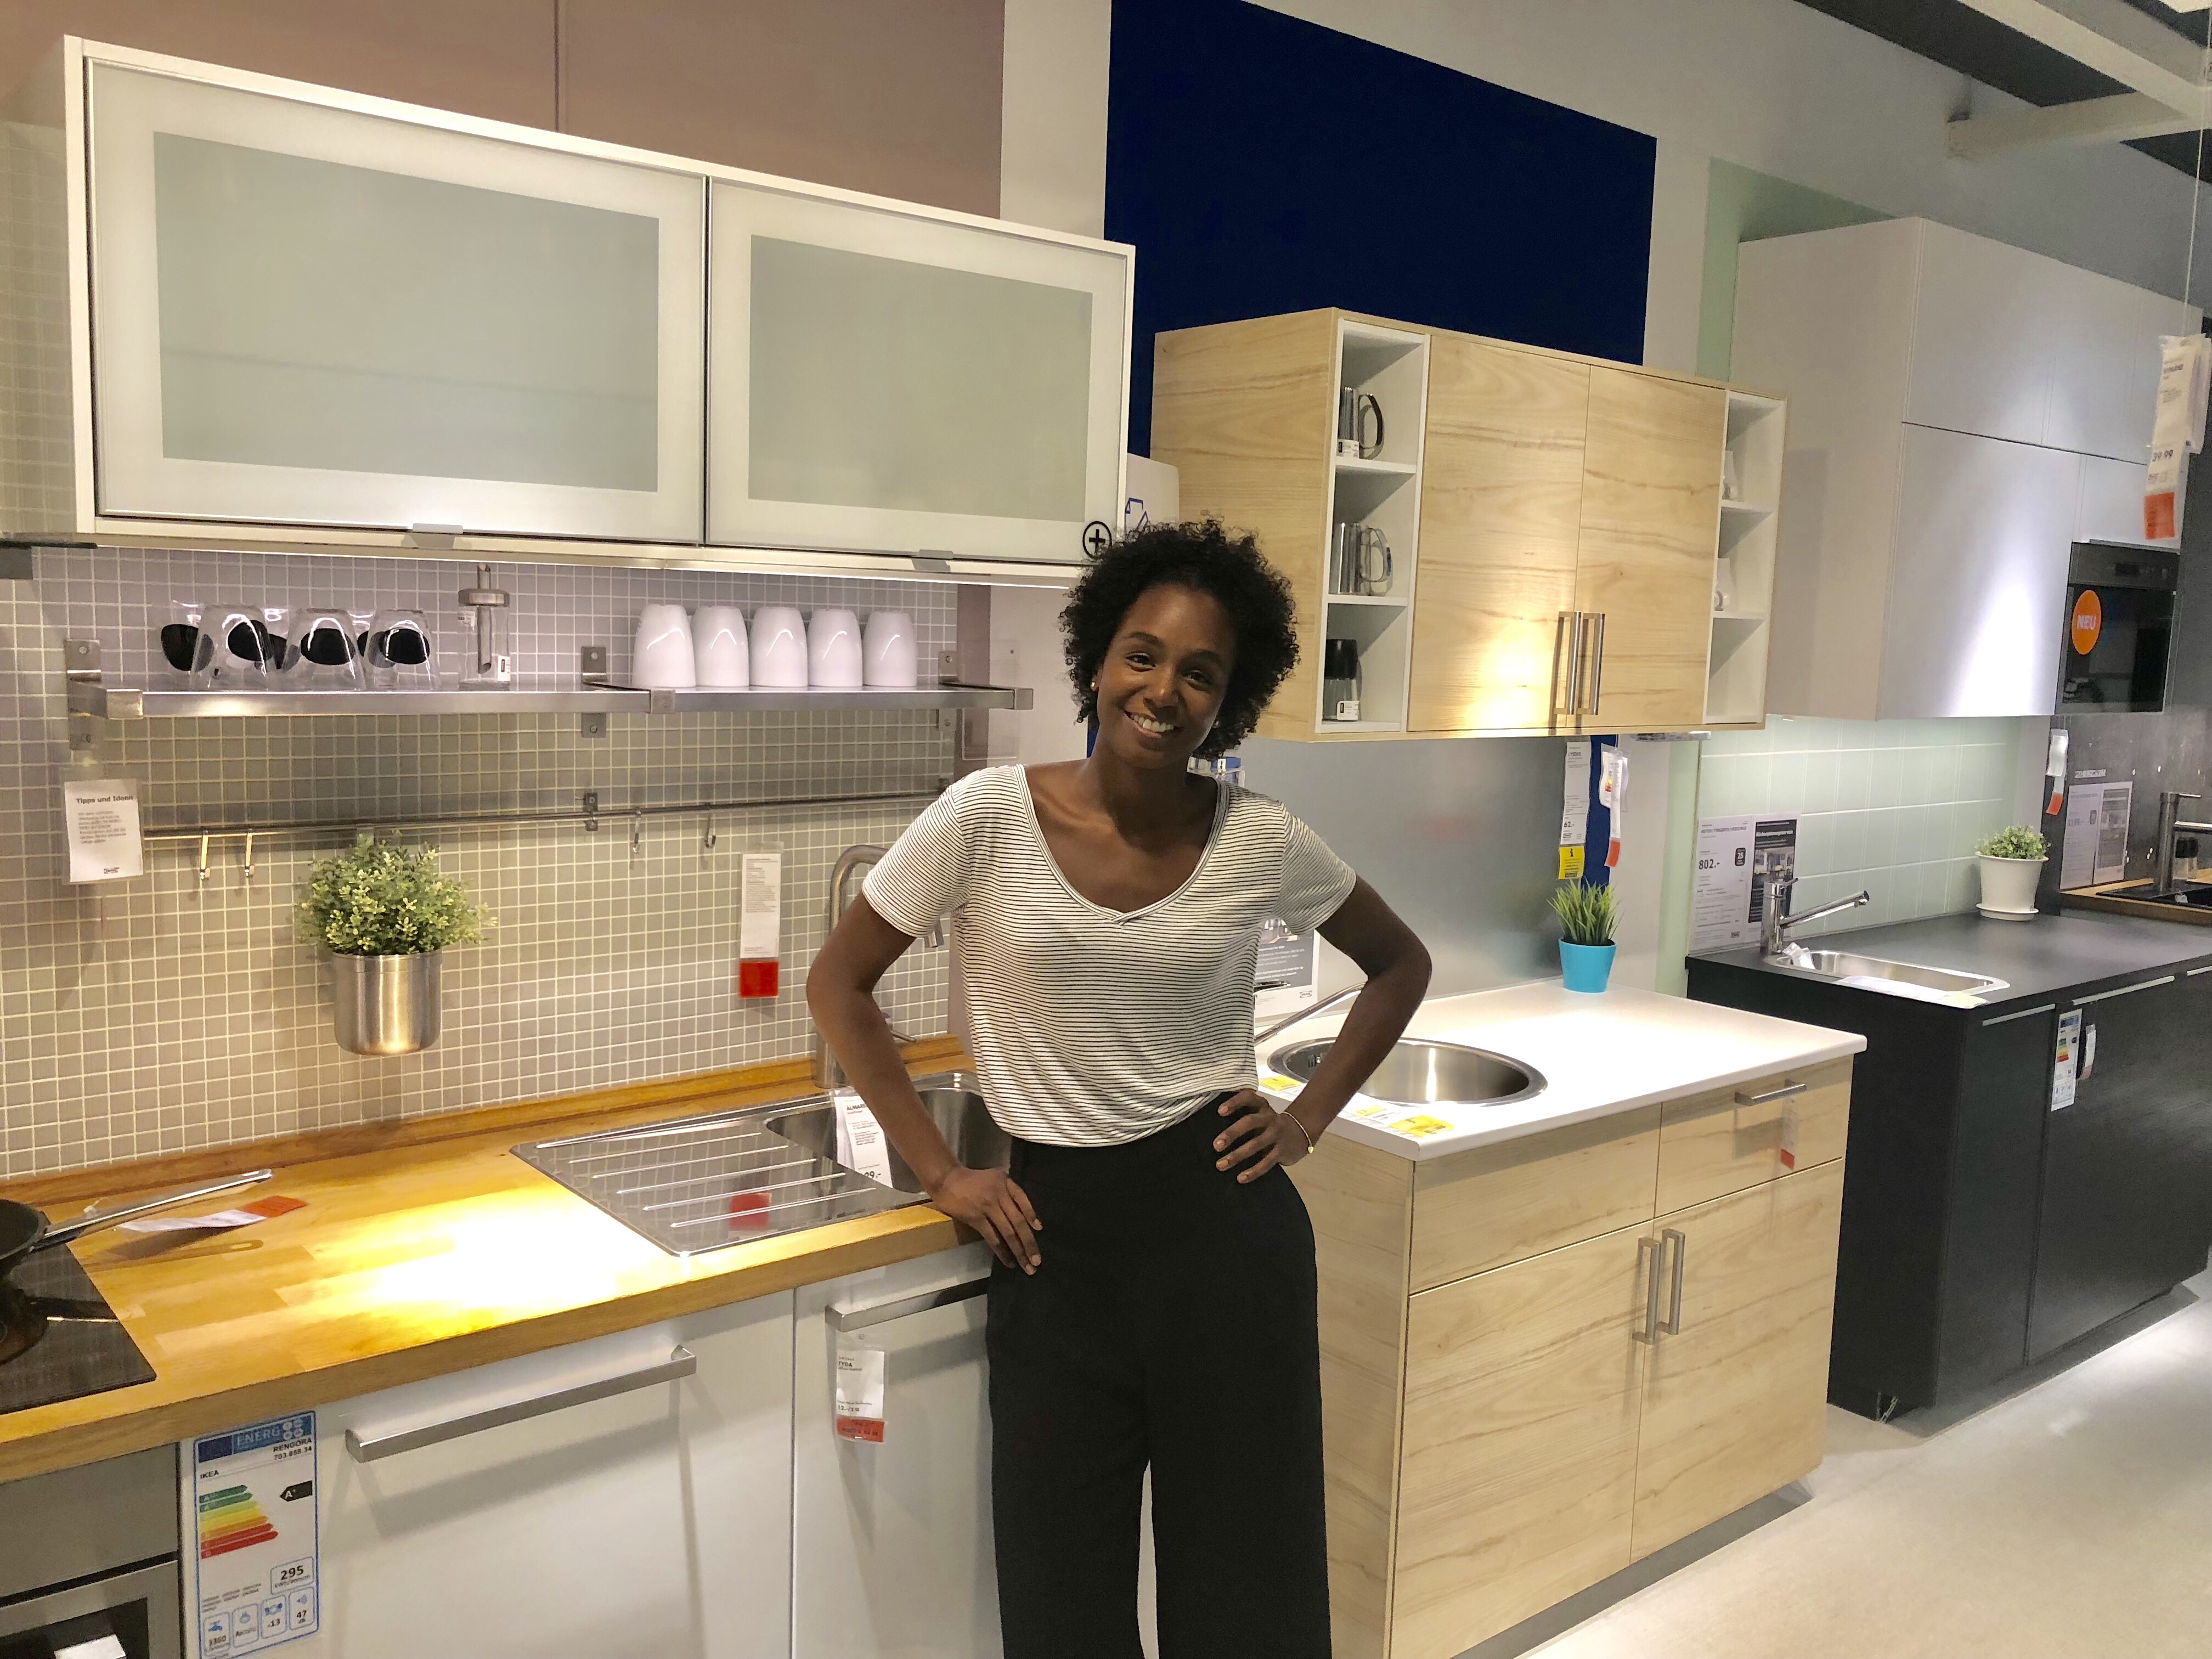 Apartments Don T Come With Kitchens In Germany Alisa Jordan Writes